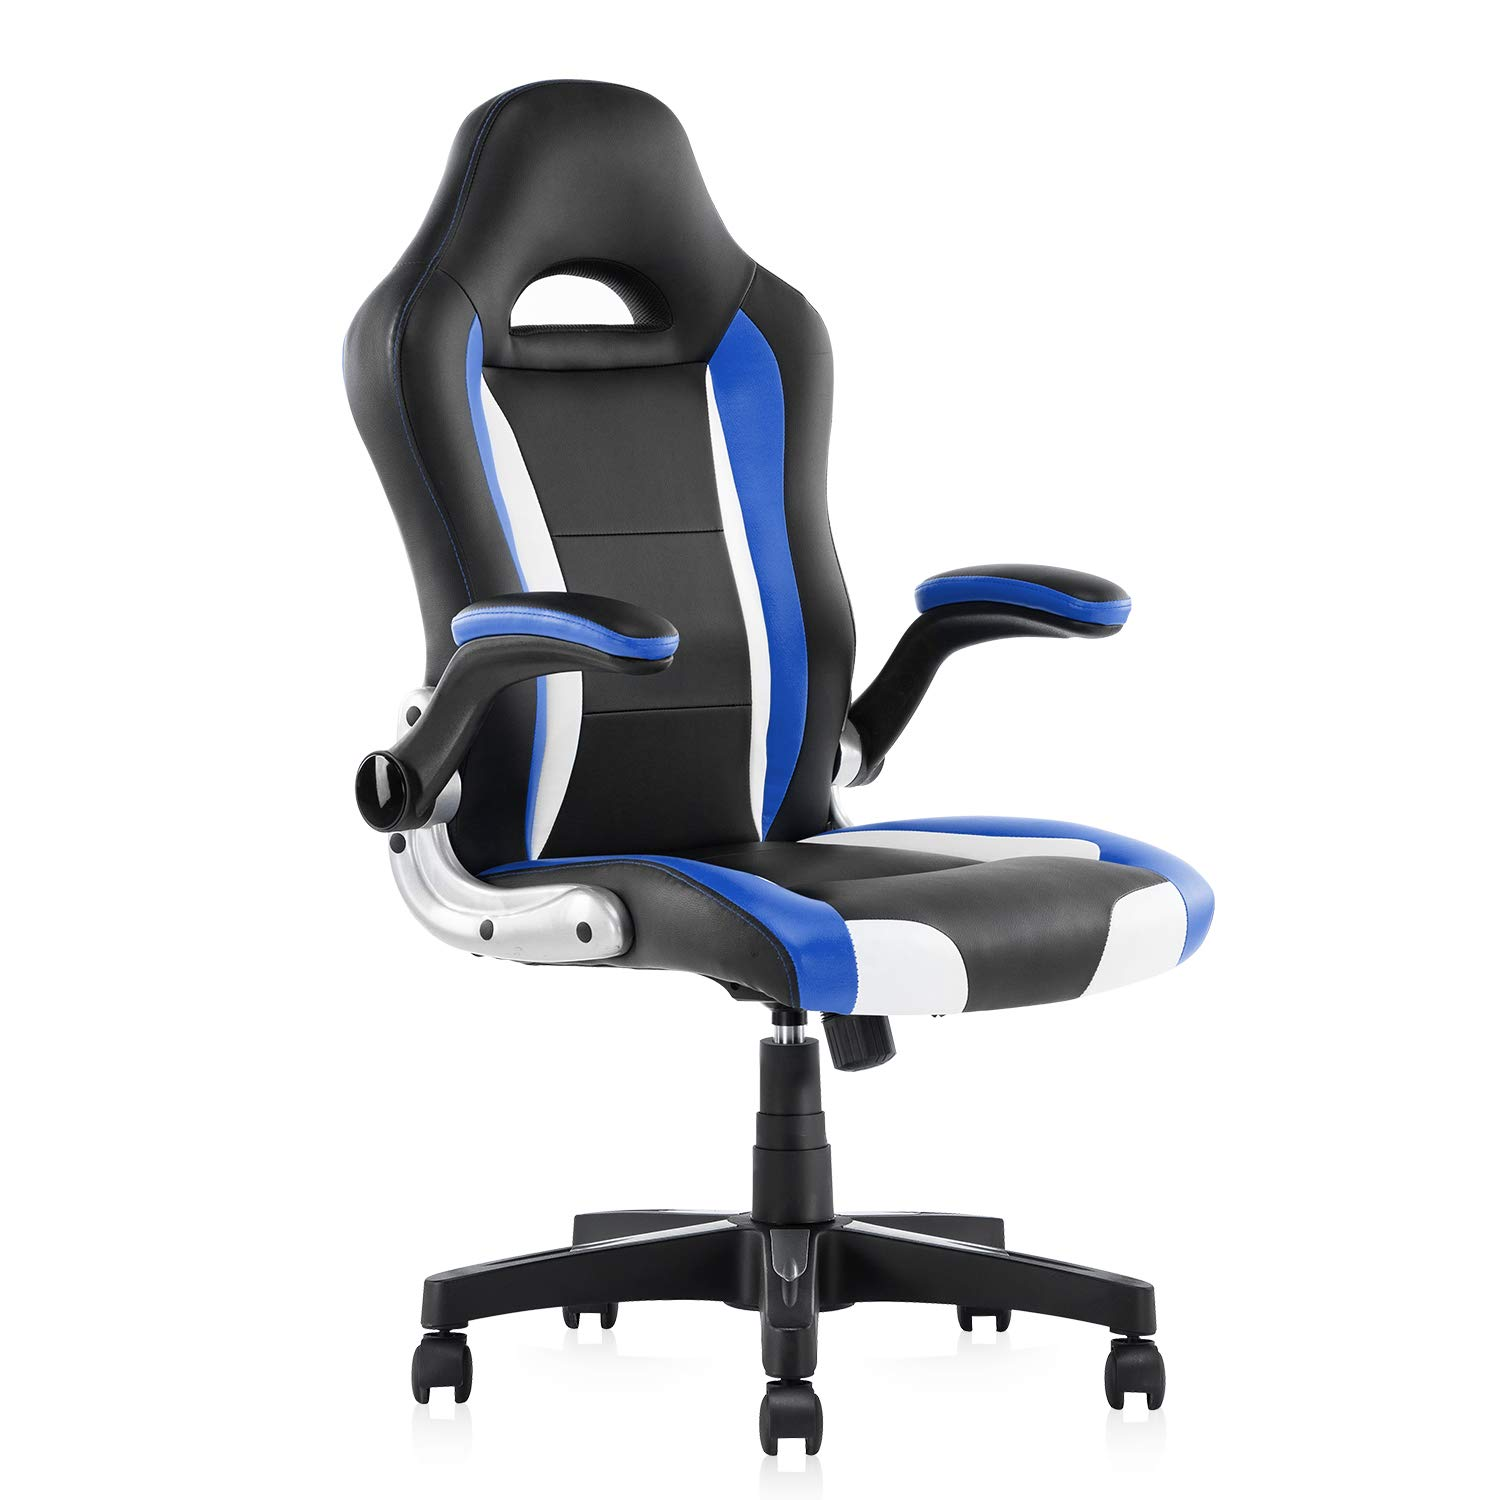 YAMASORO Leather Computer Gaming Chairs Ergonomic Office Desk Chairs with Flip up Arms and Wheels 300lbs Blue&Black by YAMASORO